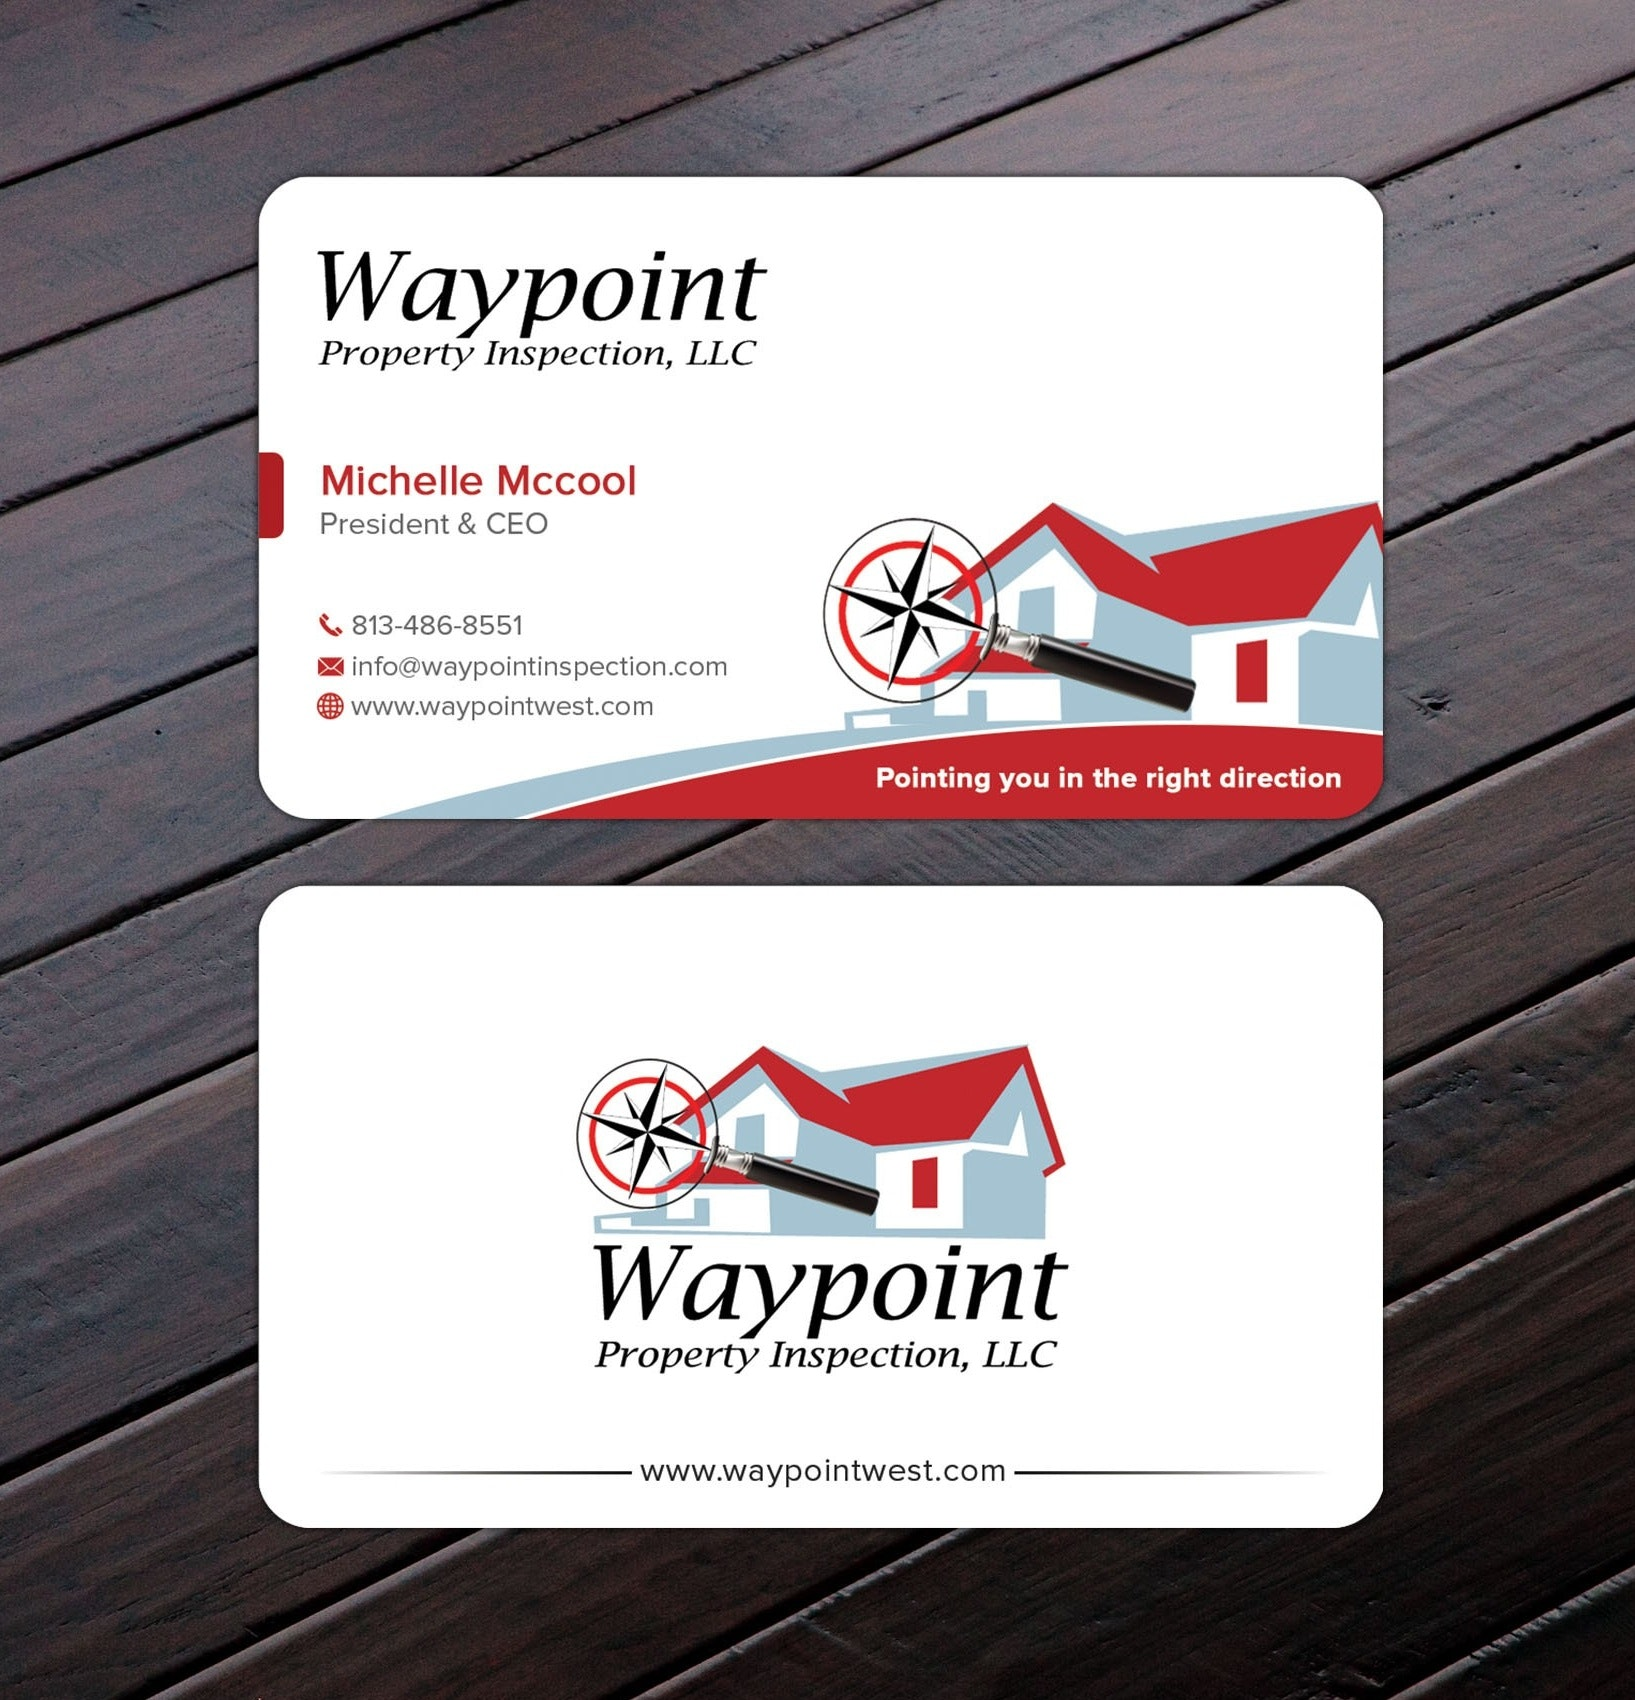 Waypoint Property Inspection business card